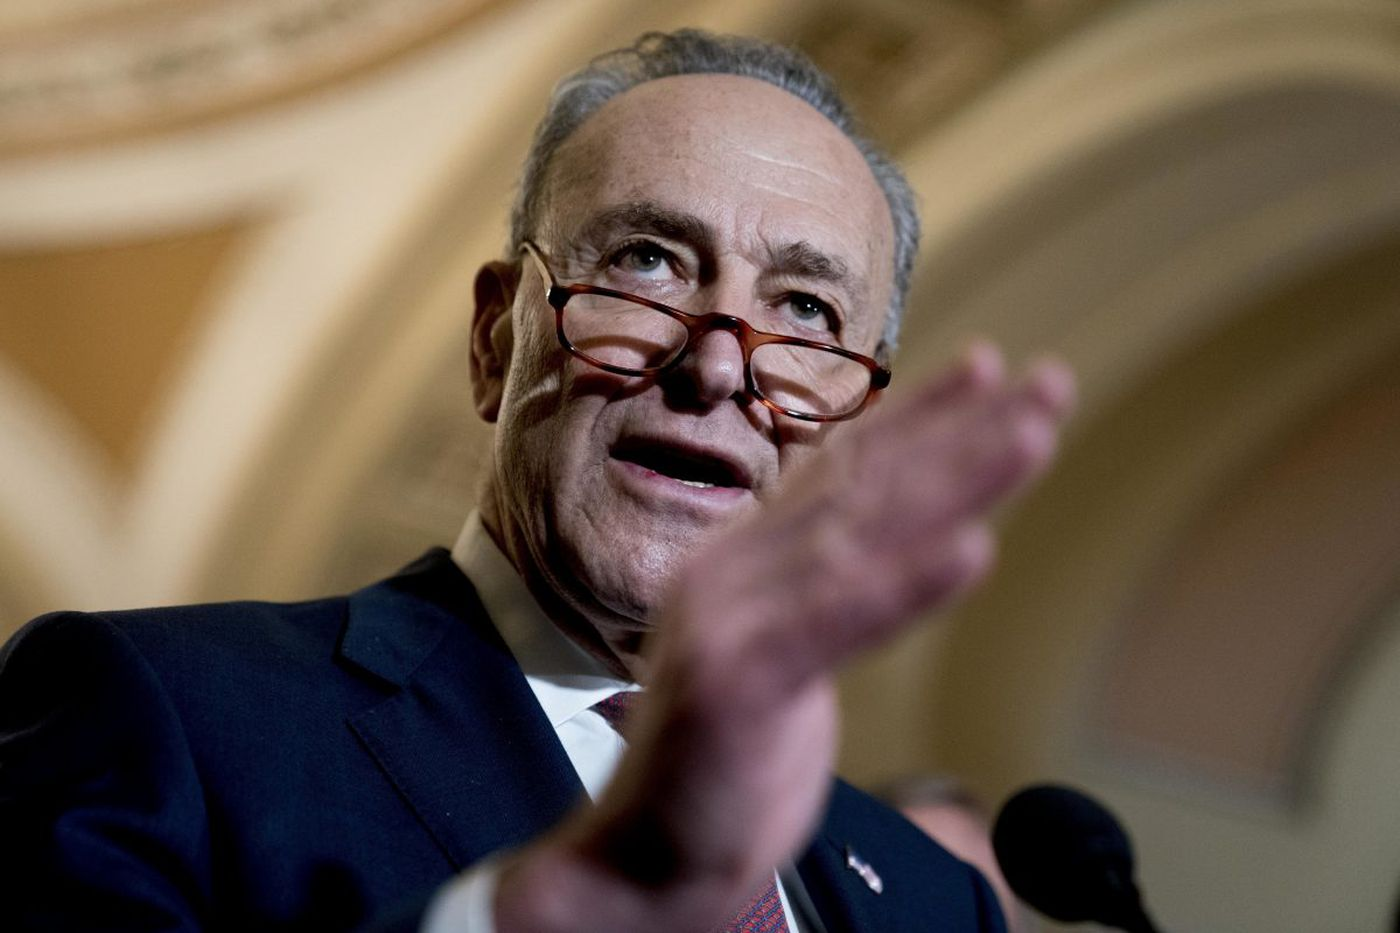 Trump taunts Schumer for taking 'such a beating' on government shutdown fight